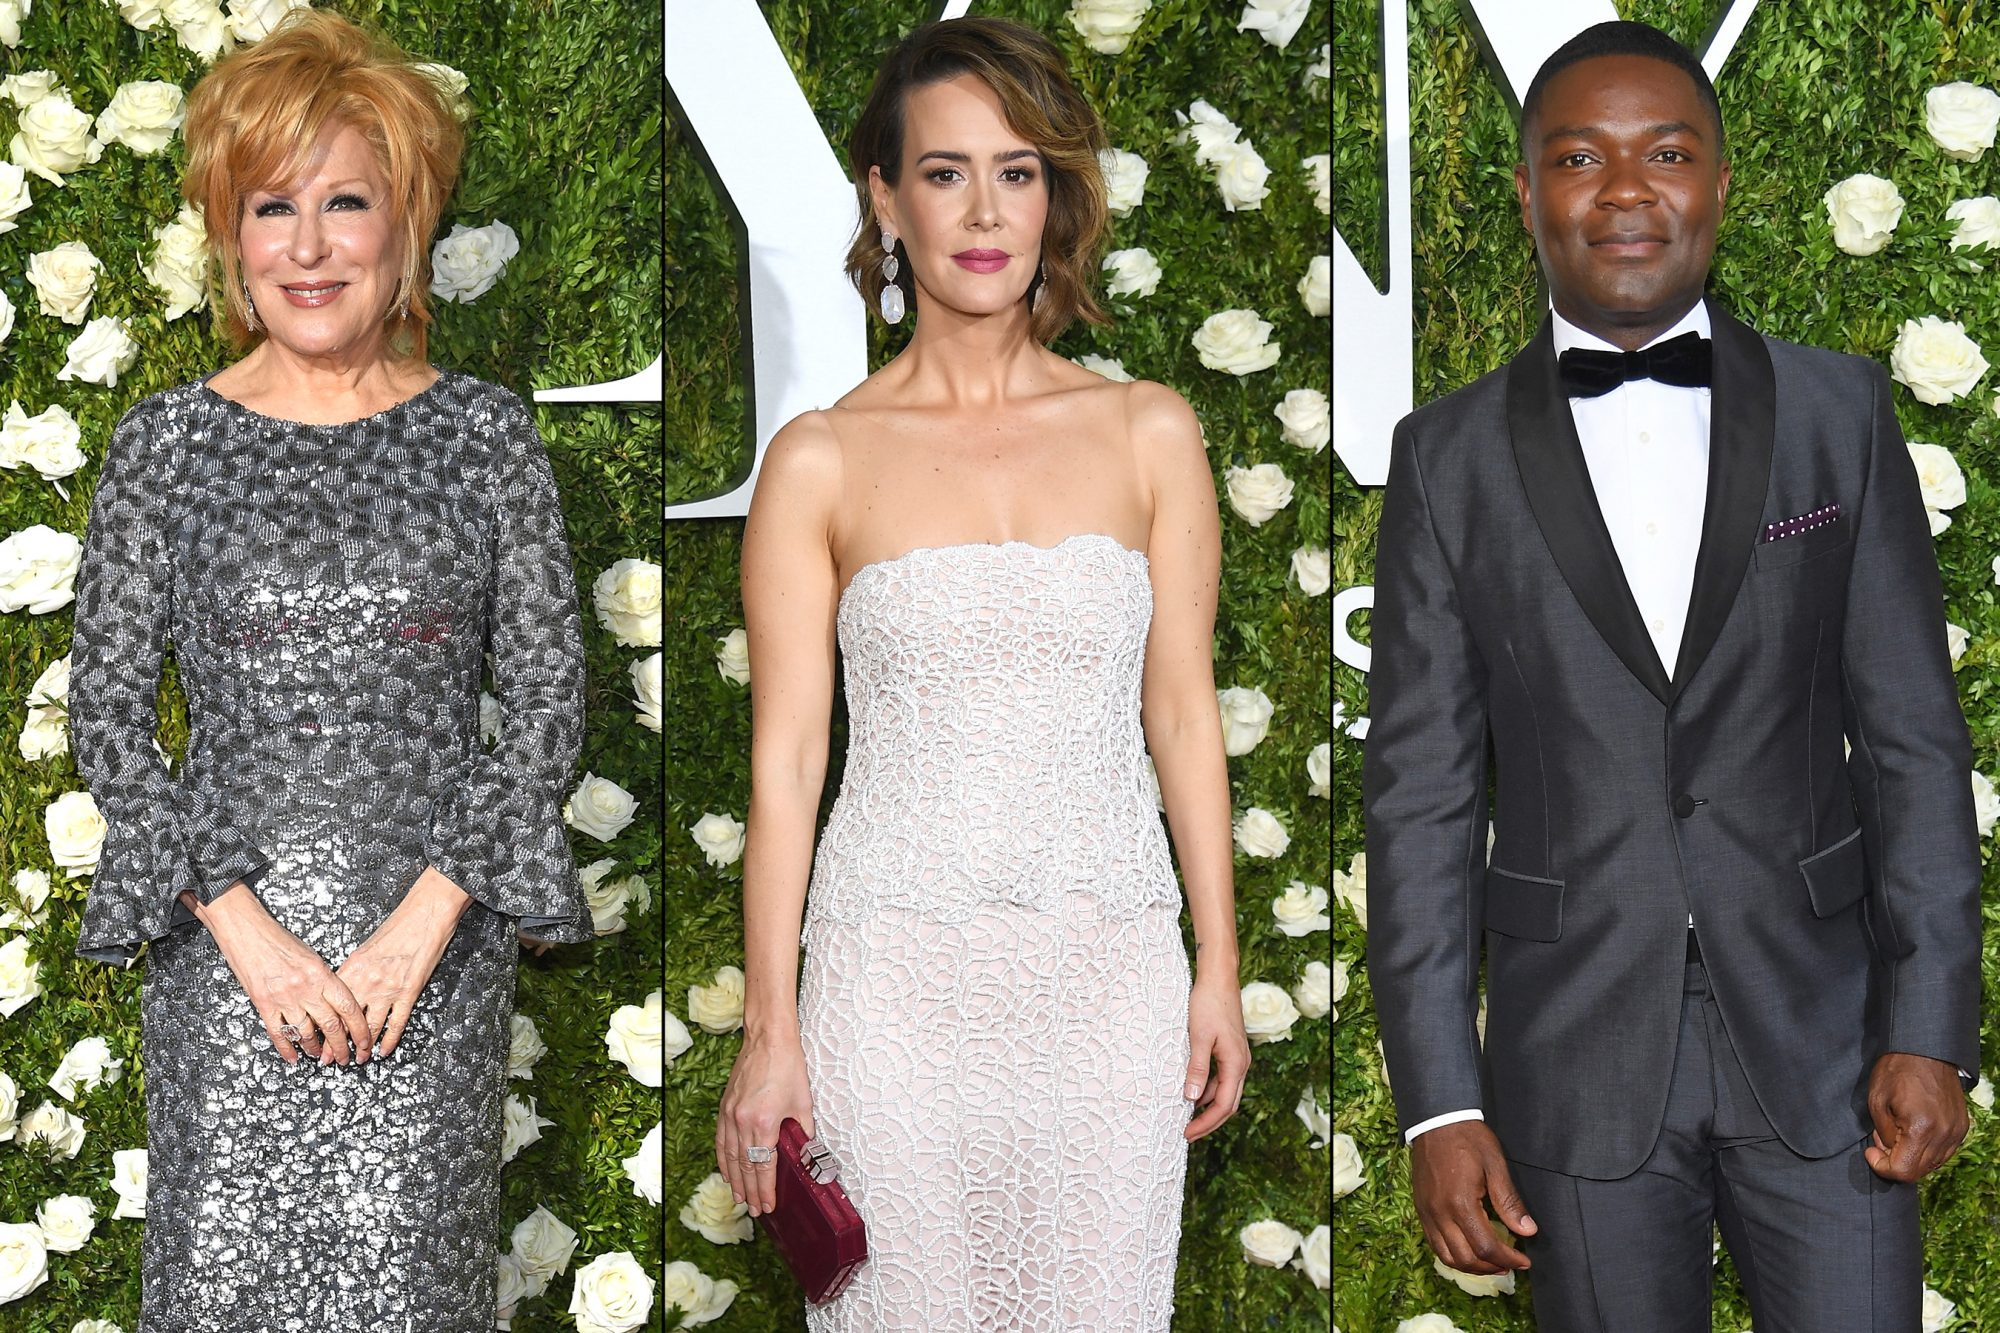 The Highs and Lows of the 2017 Tonys Red Carpet